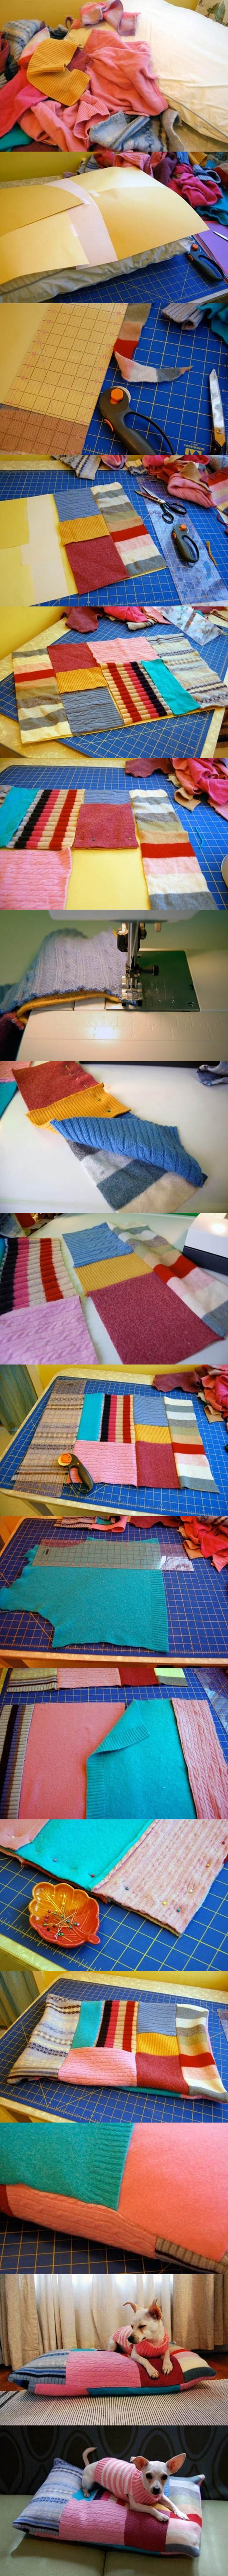 DIY Patchwork Pet Bed 2